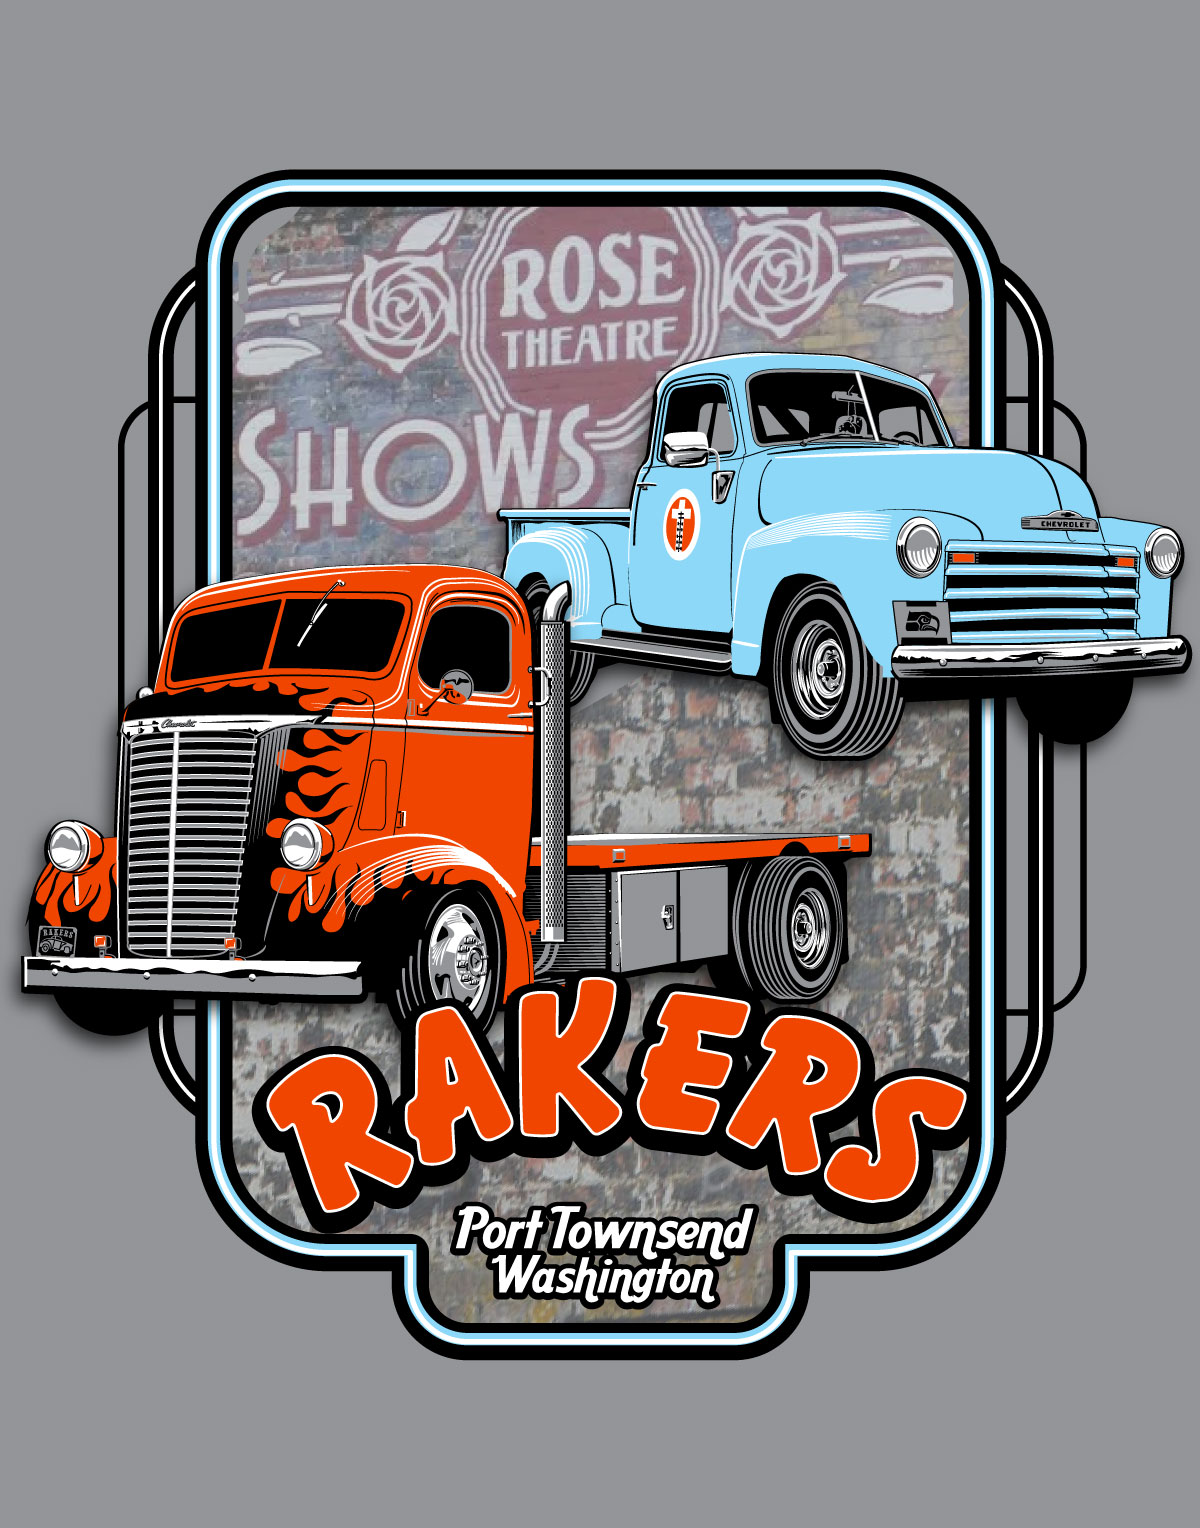 ROSE-THEATRE-TRUCKS-1st-draft-4-25-2019-PROOF.jpg